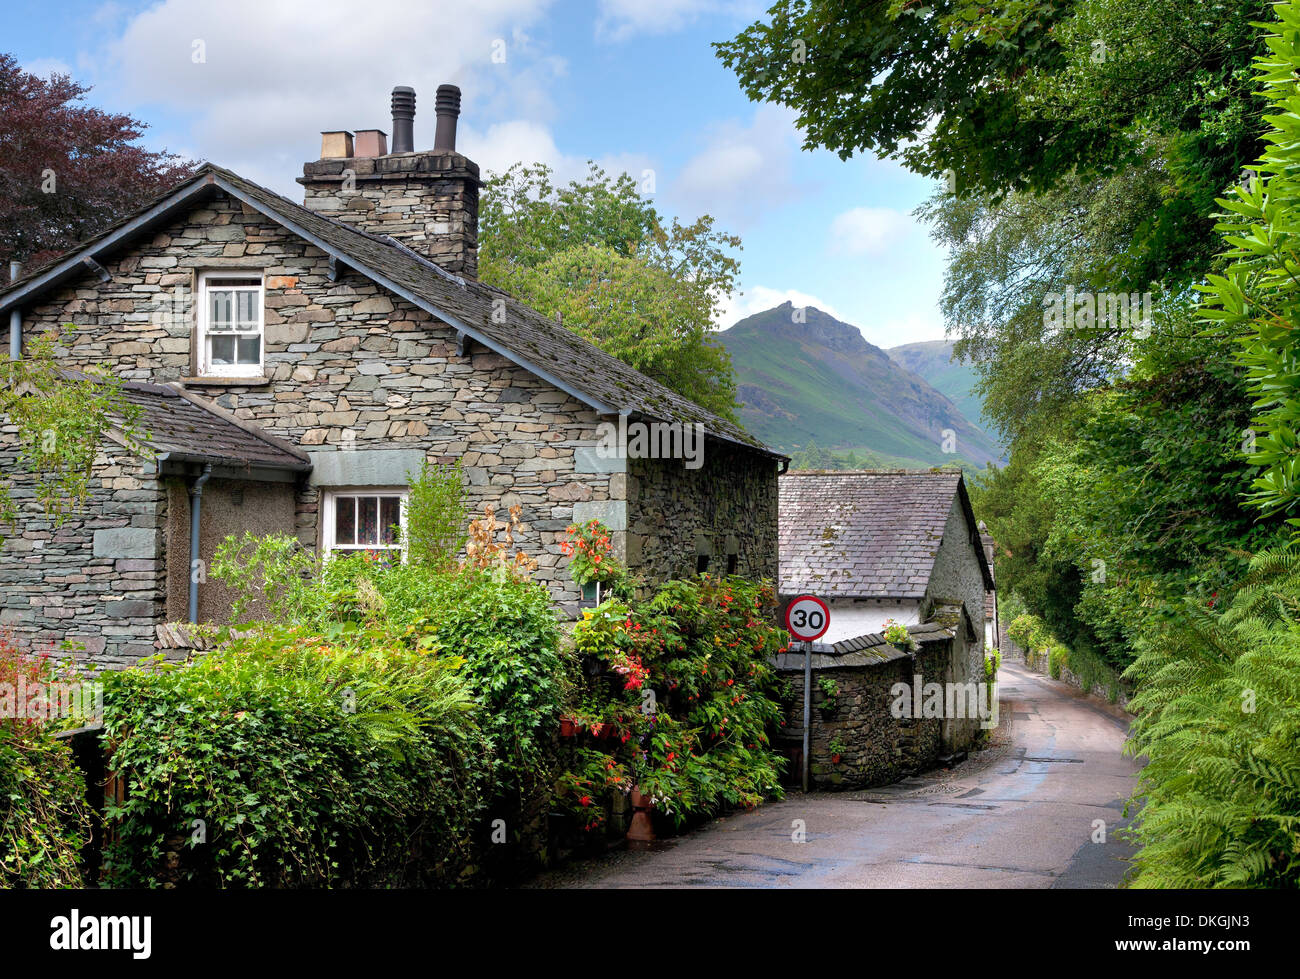 Grasmere village, the Lake District, Cumbria, England. - Stock Image